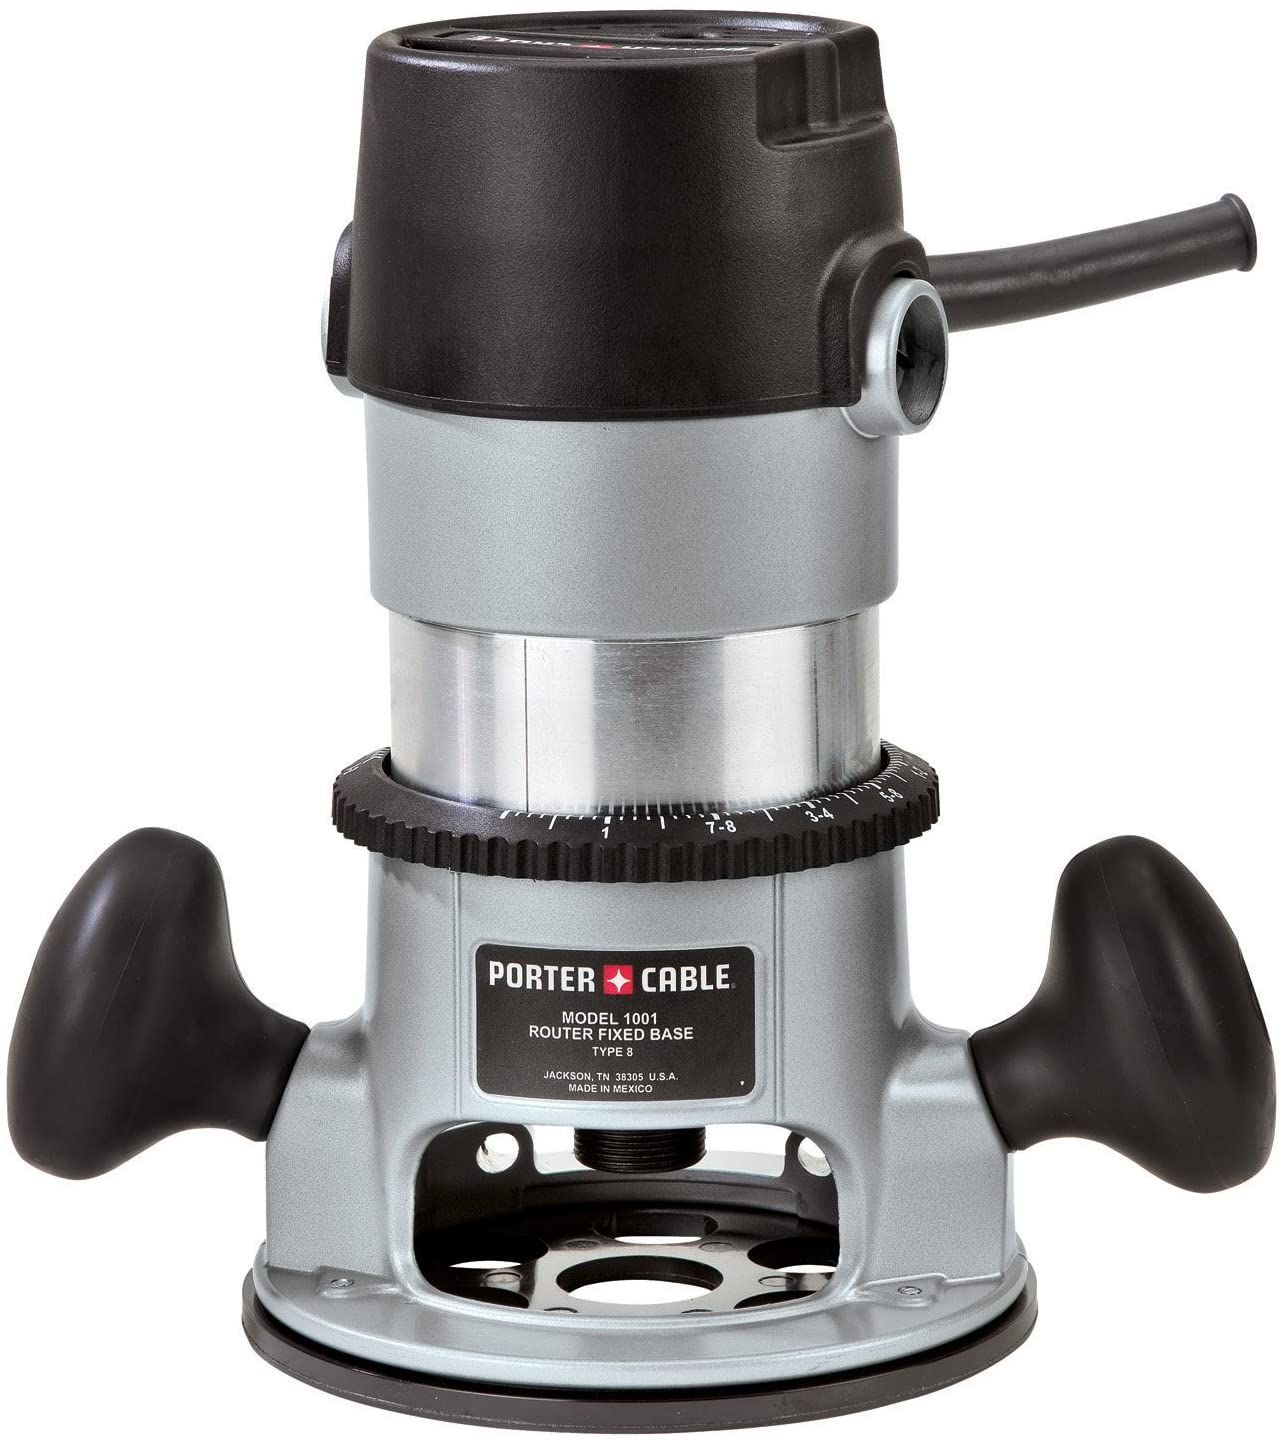 Porter-Cable 690LR 1.75HP Wood-Router